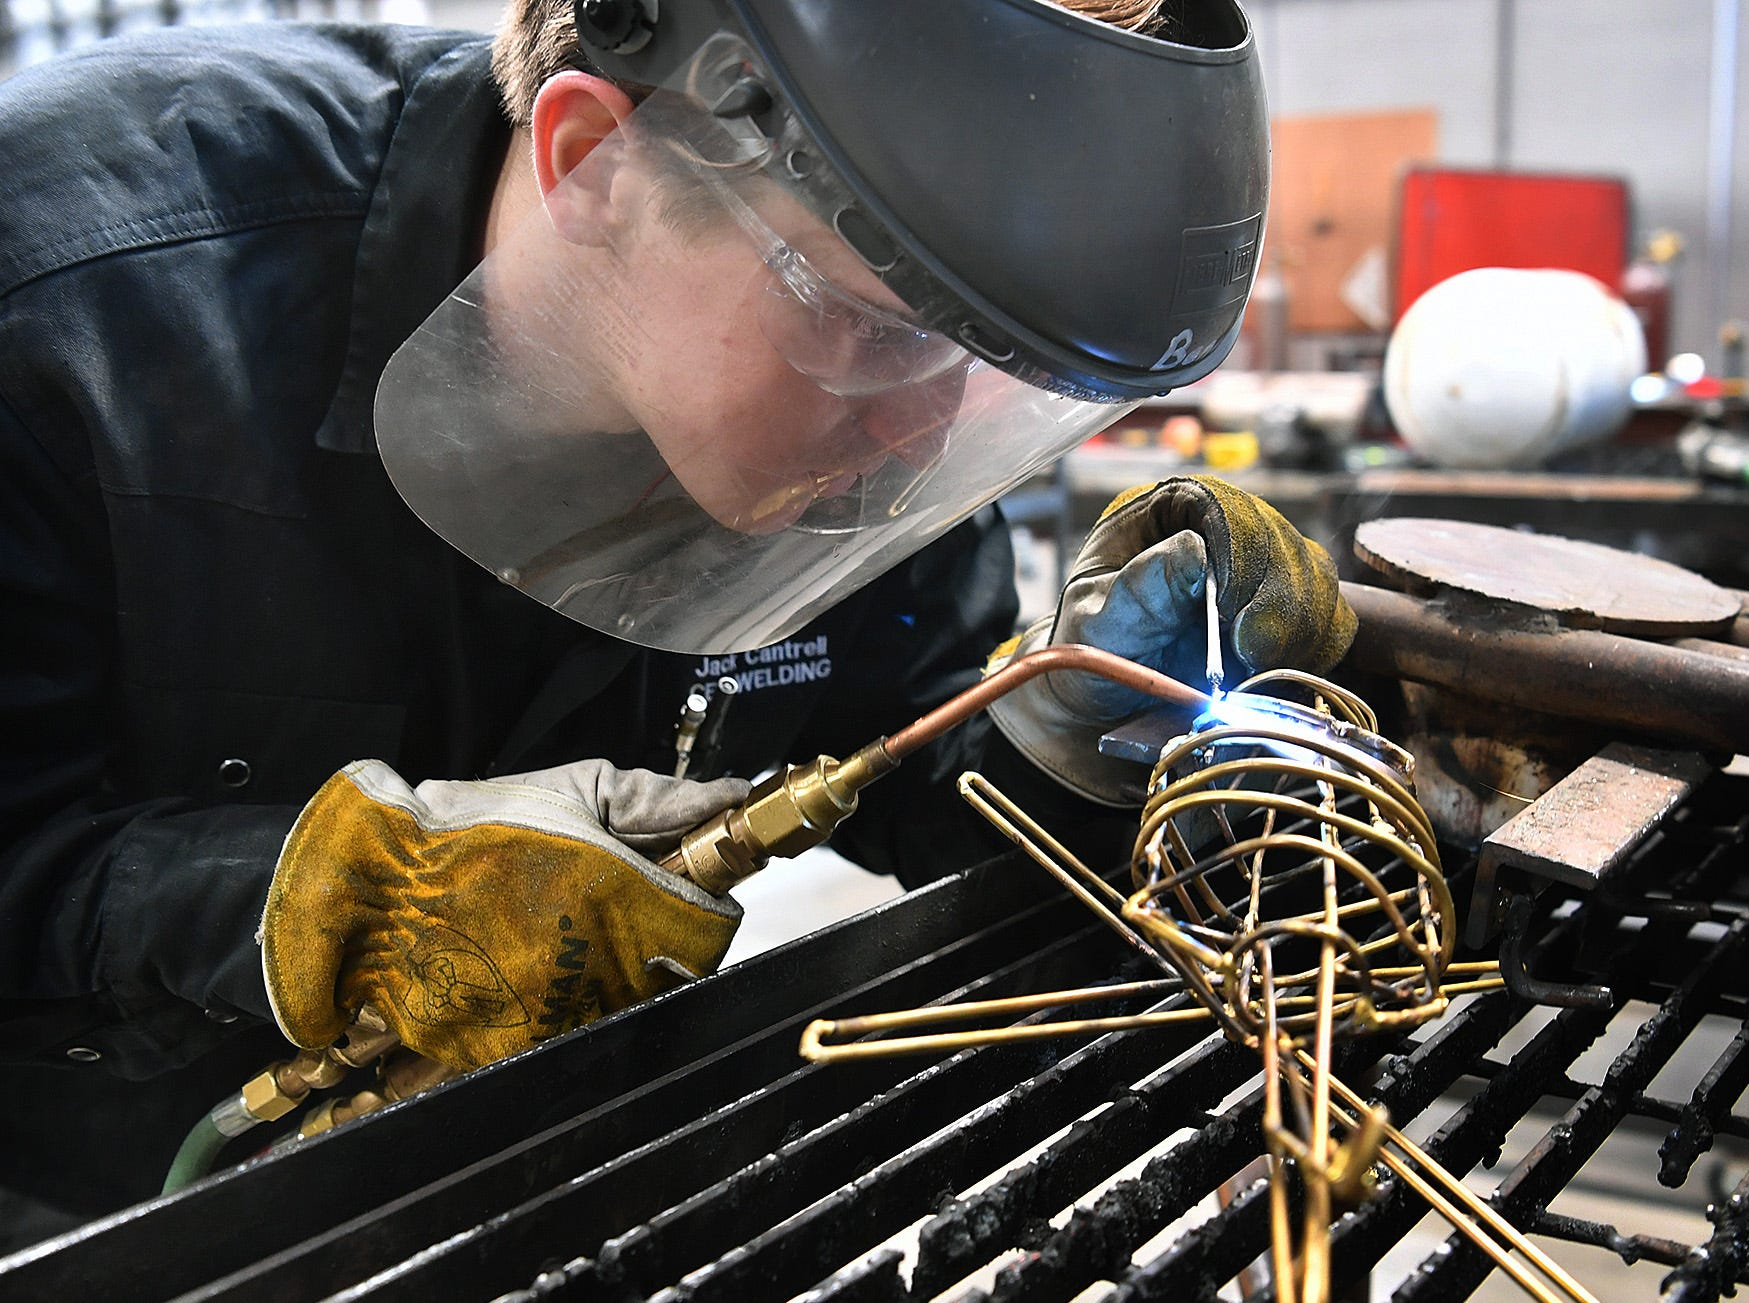 Jack Cantrell, a welding student at the Career Education Center, brazes brass rods together as he creates a sculpture of a Blackhawk helicopter to honor his late brother, Stephen Cantrell, a Blackhawk helicopter pilot who died in a training accident in 2017.